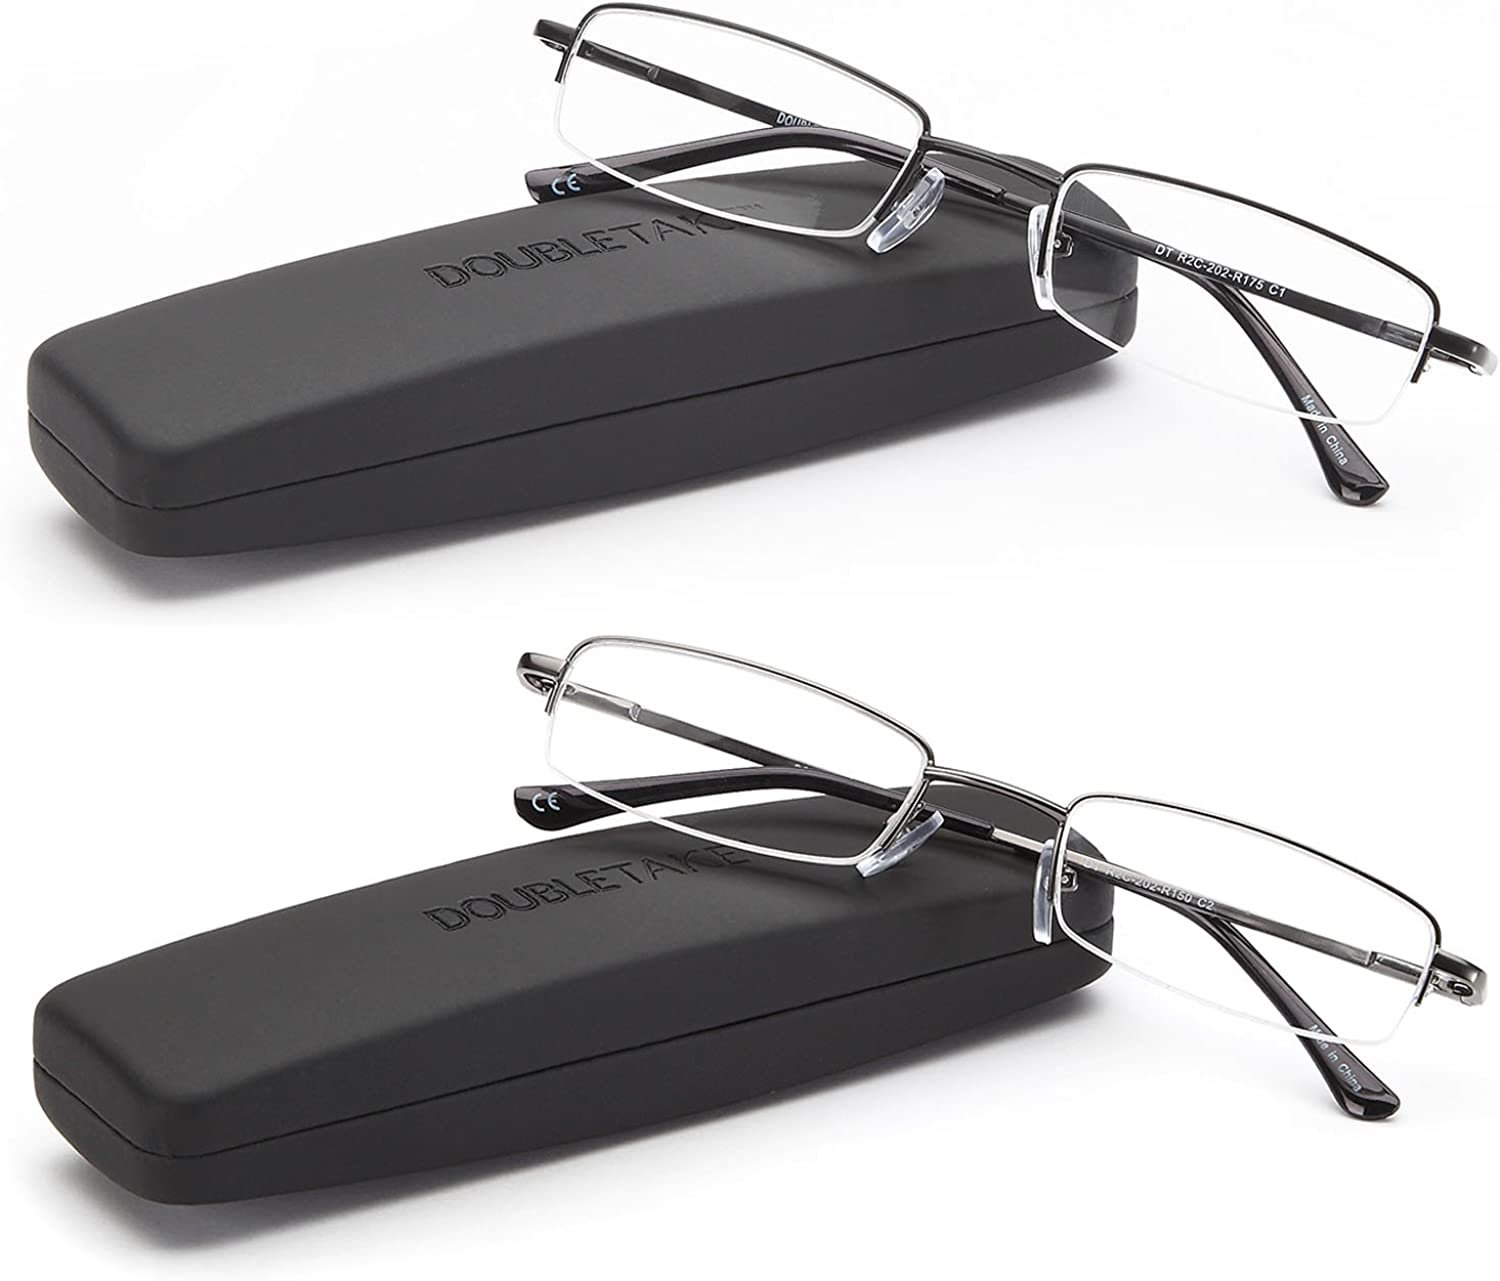 B01EXCLLQC DOUBLETAKE Reading Glasses - 2 Pairs Compact Case Included Semi Rimless Readers 718iB9jno6L